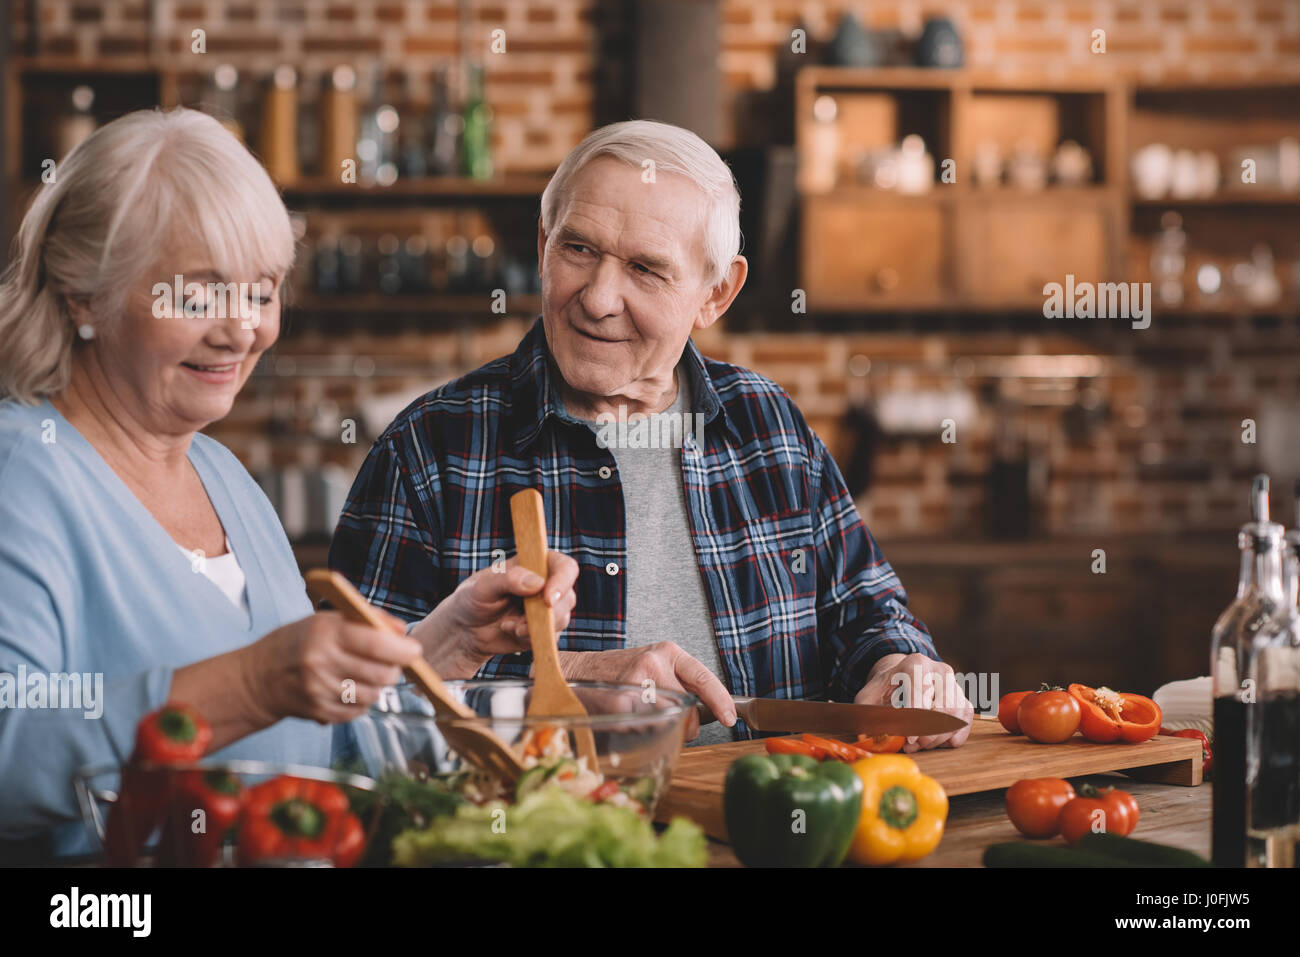 portrait of happy senior couple cooking together at home - Stock Image